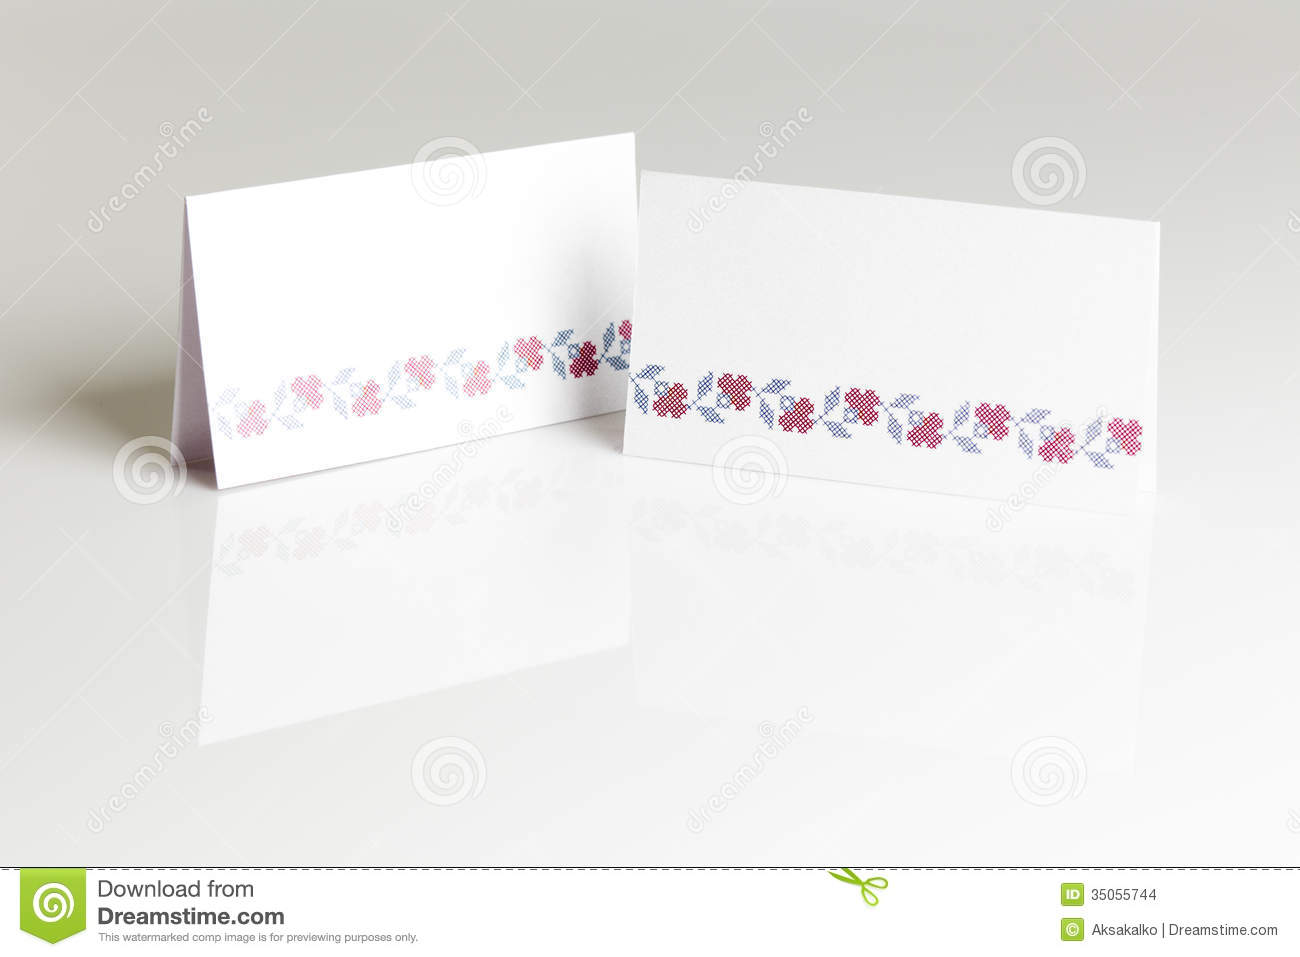 Blank Place Card For Wedding Table Stock Photos - Image: 36020793